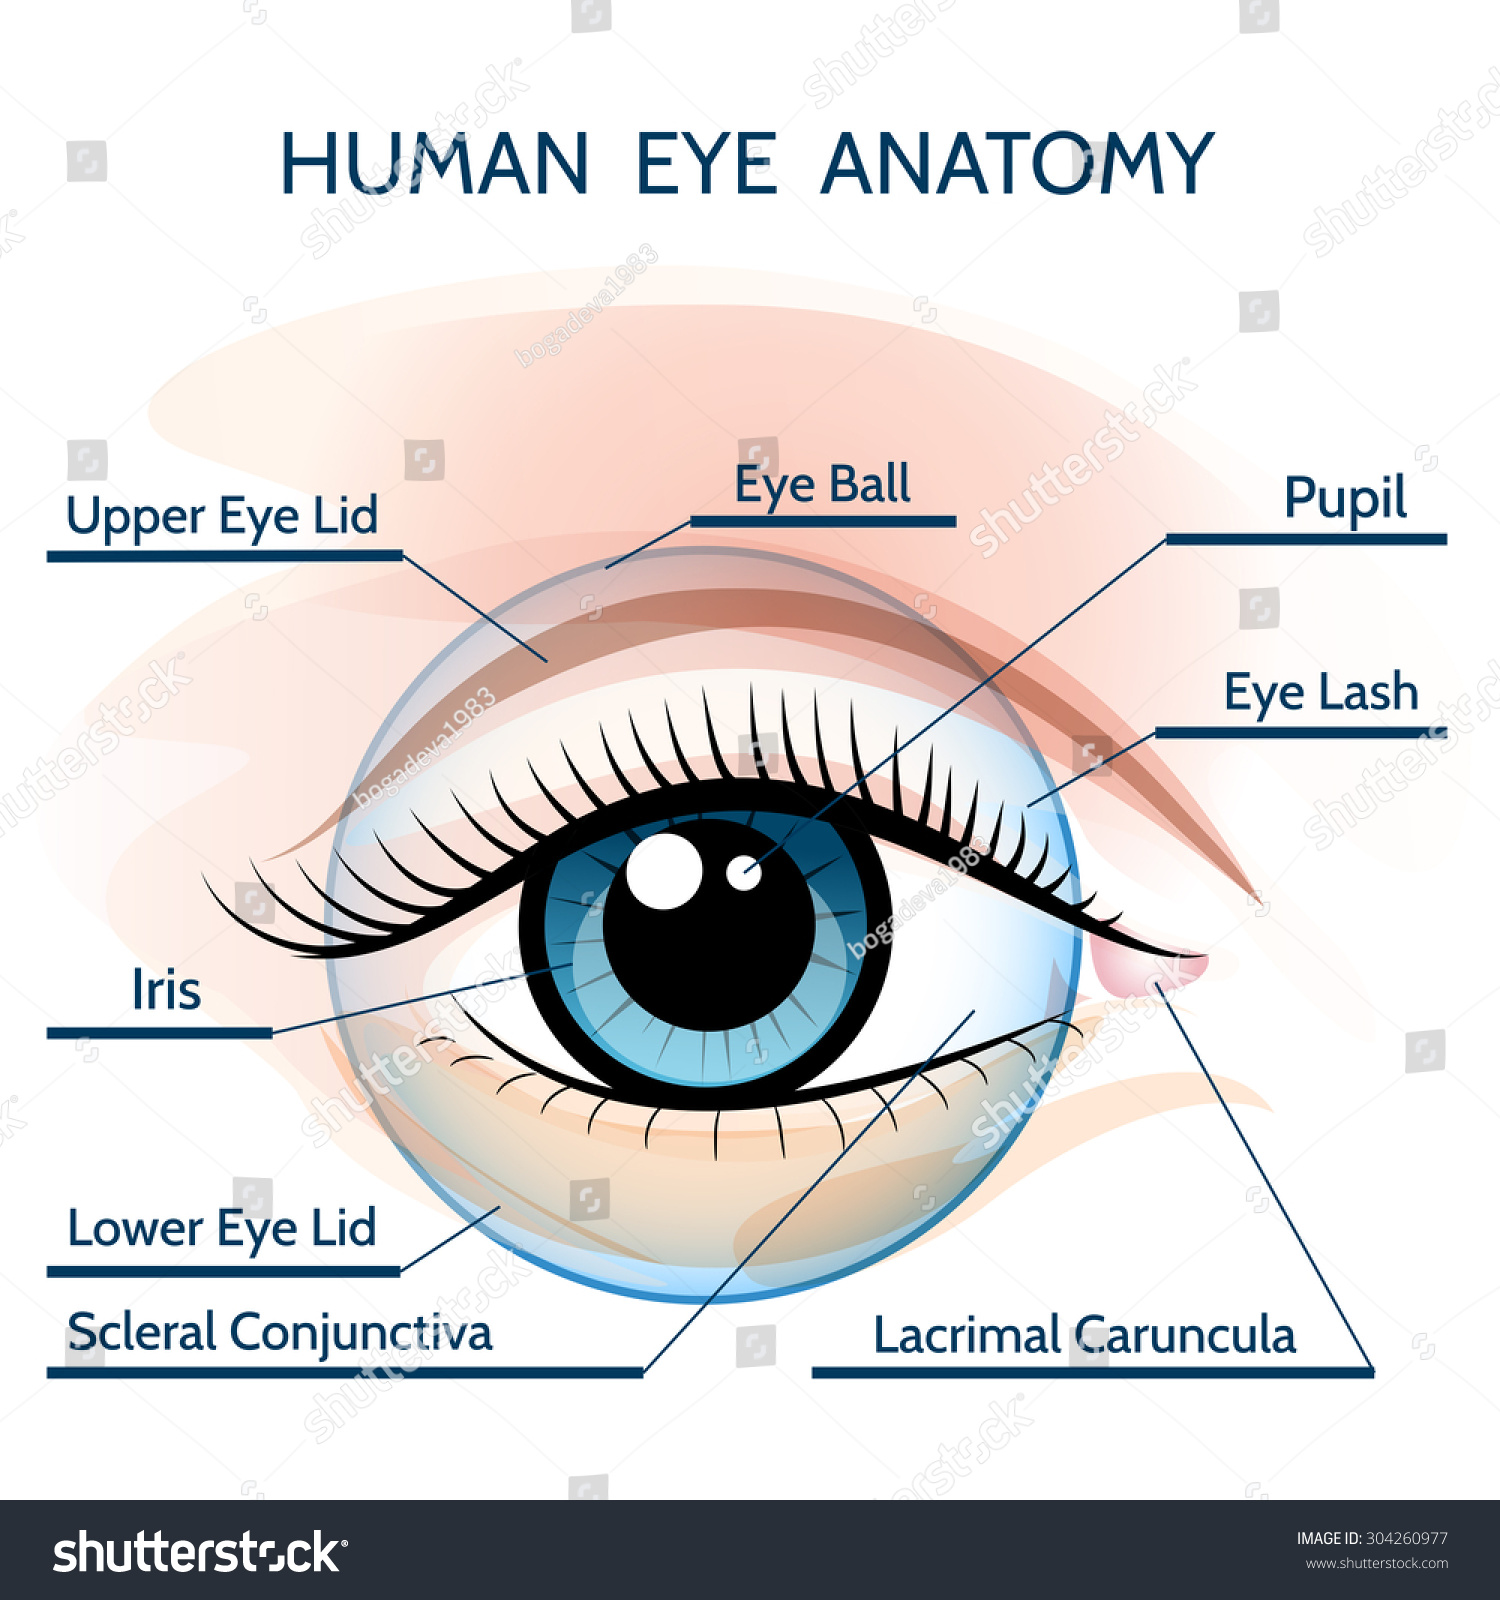 Human Eye Anatomy Illustration Only Free Stock Vector (Royalty Free ...